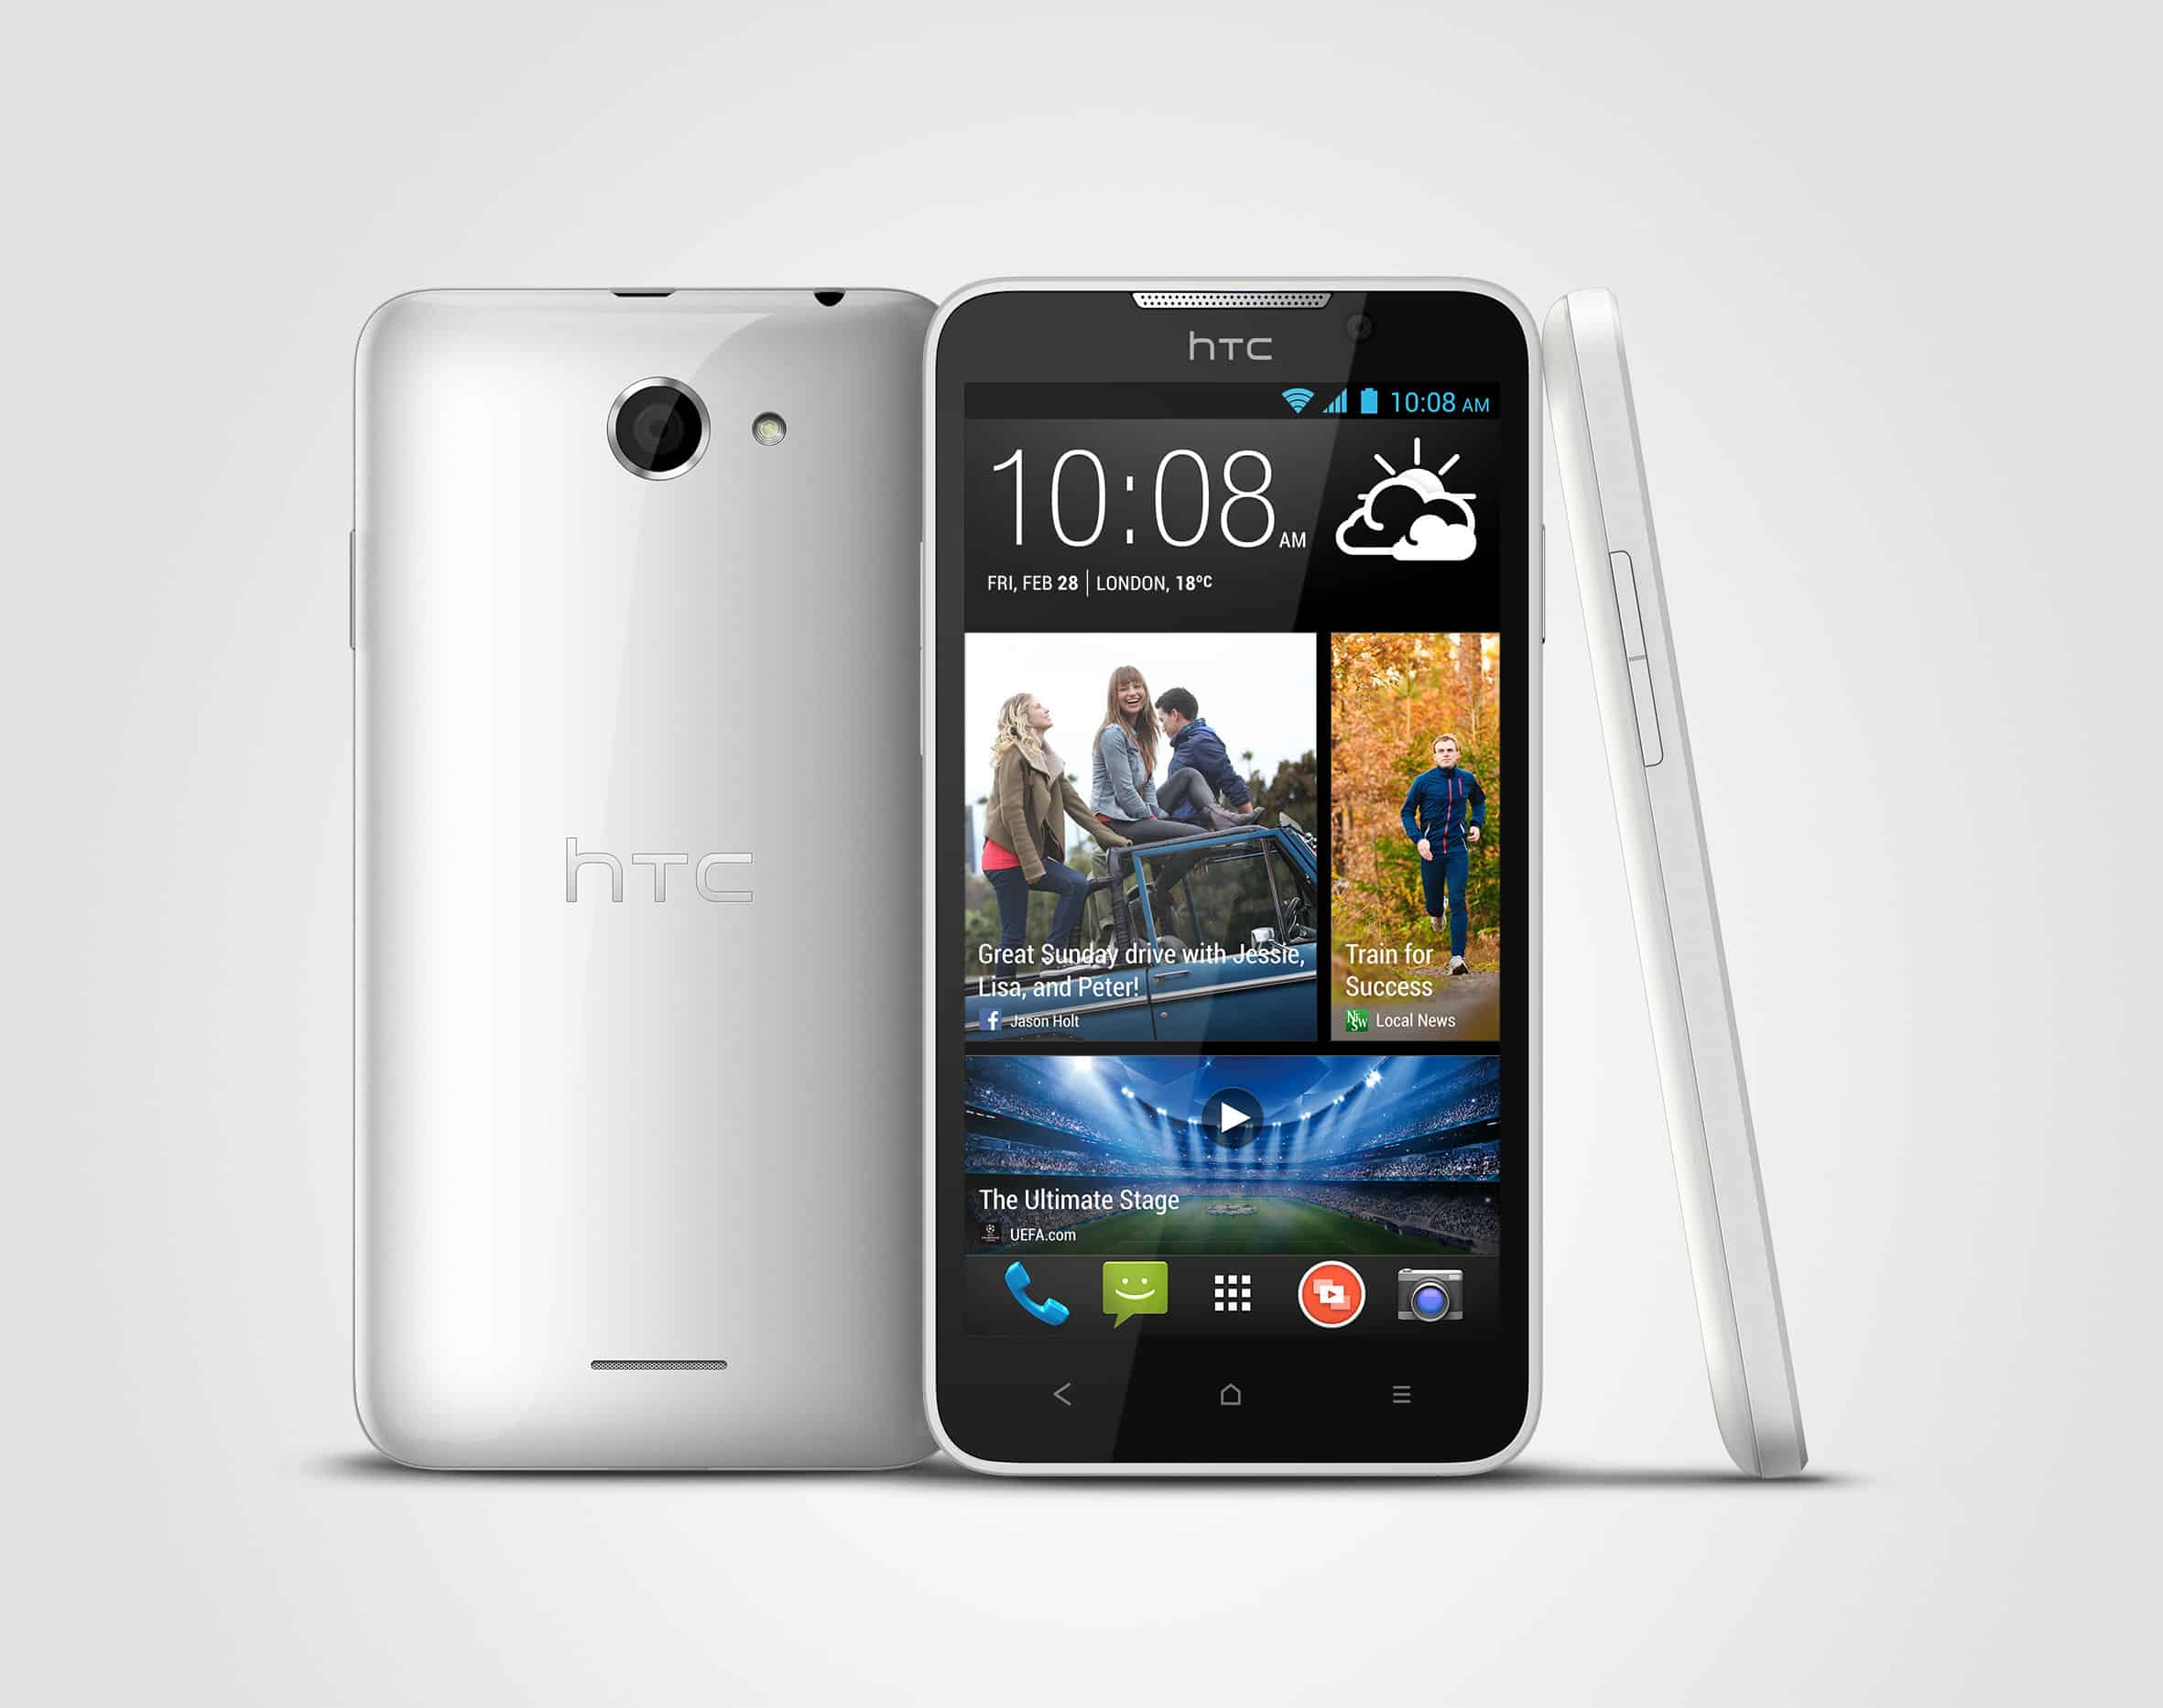 HTC Desire 516 official images